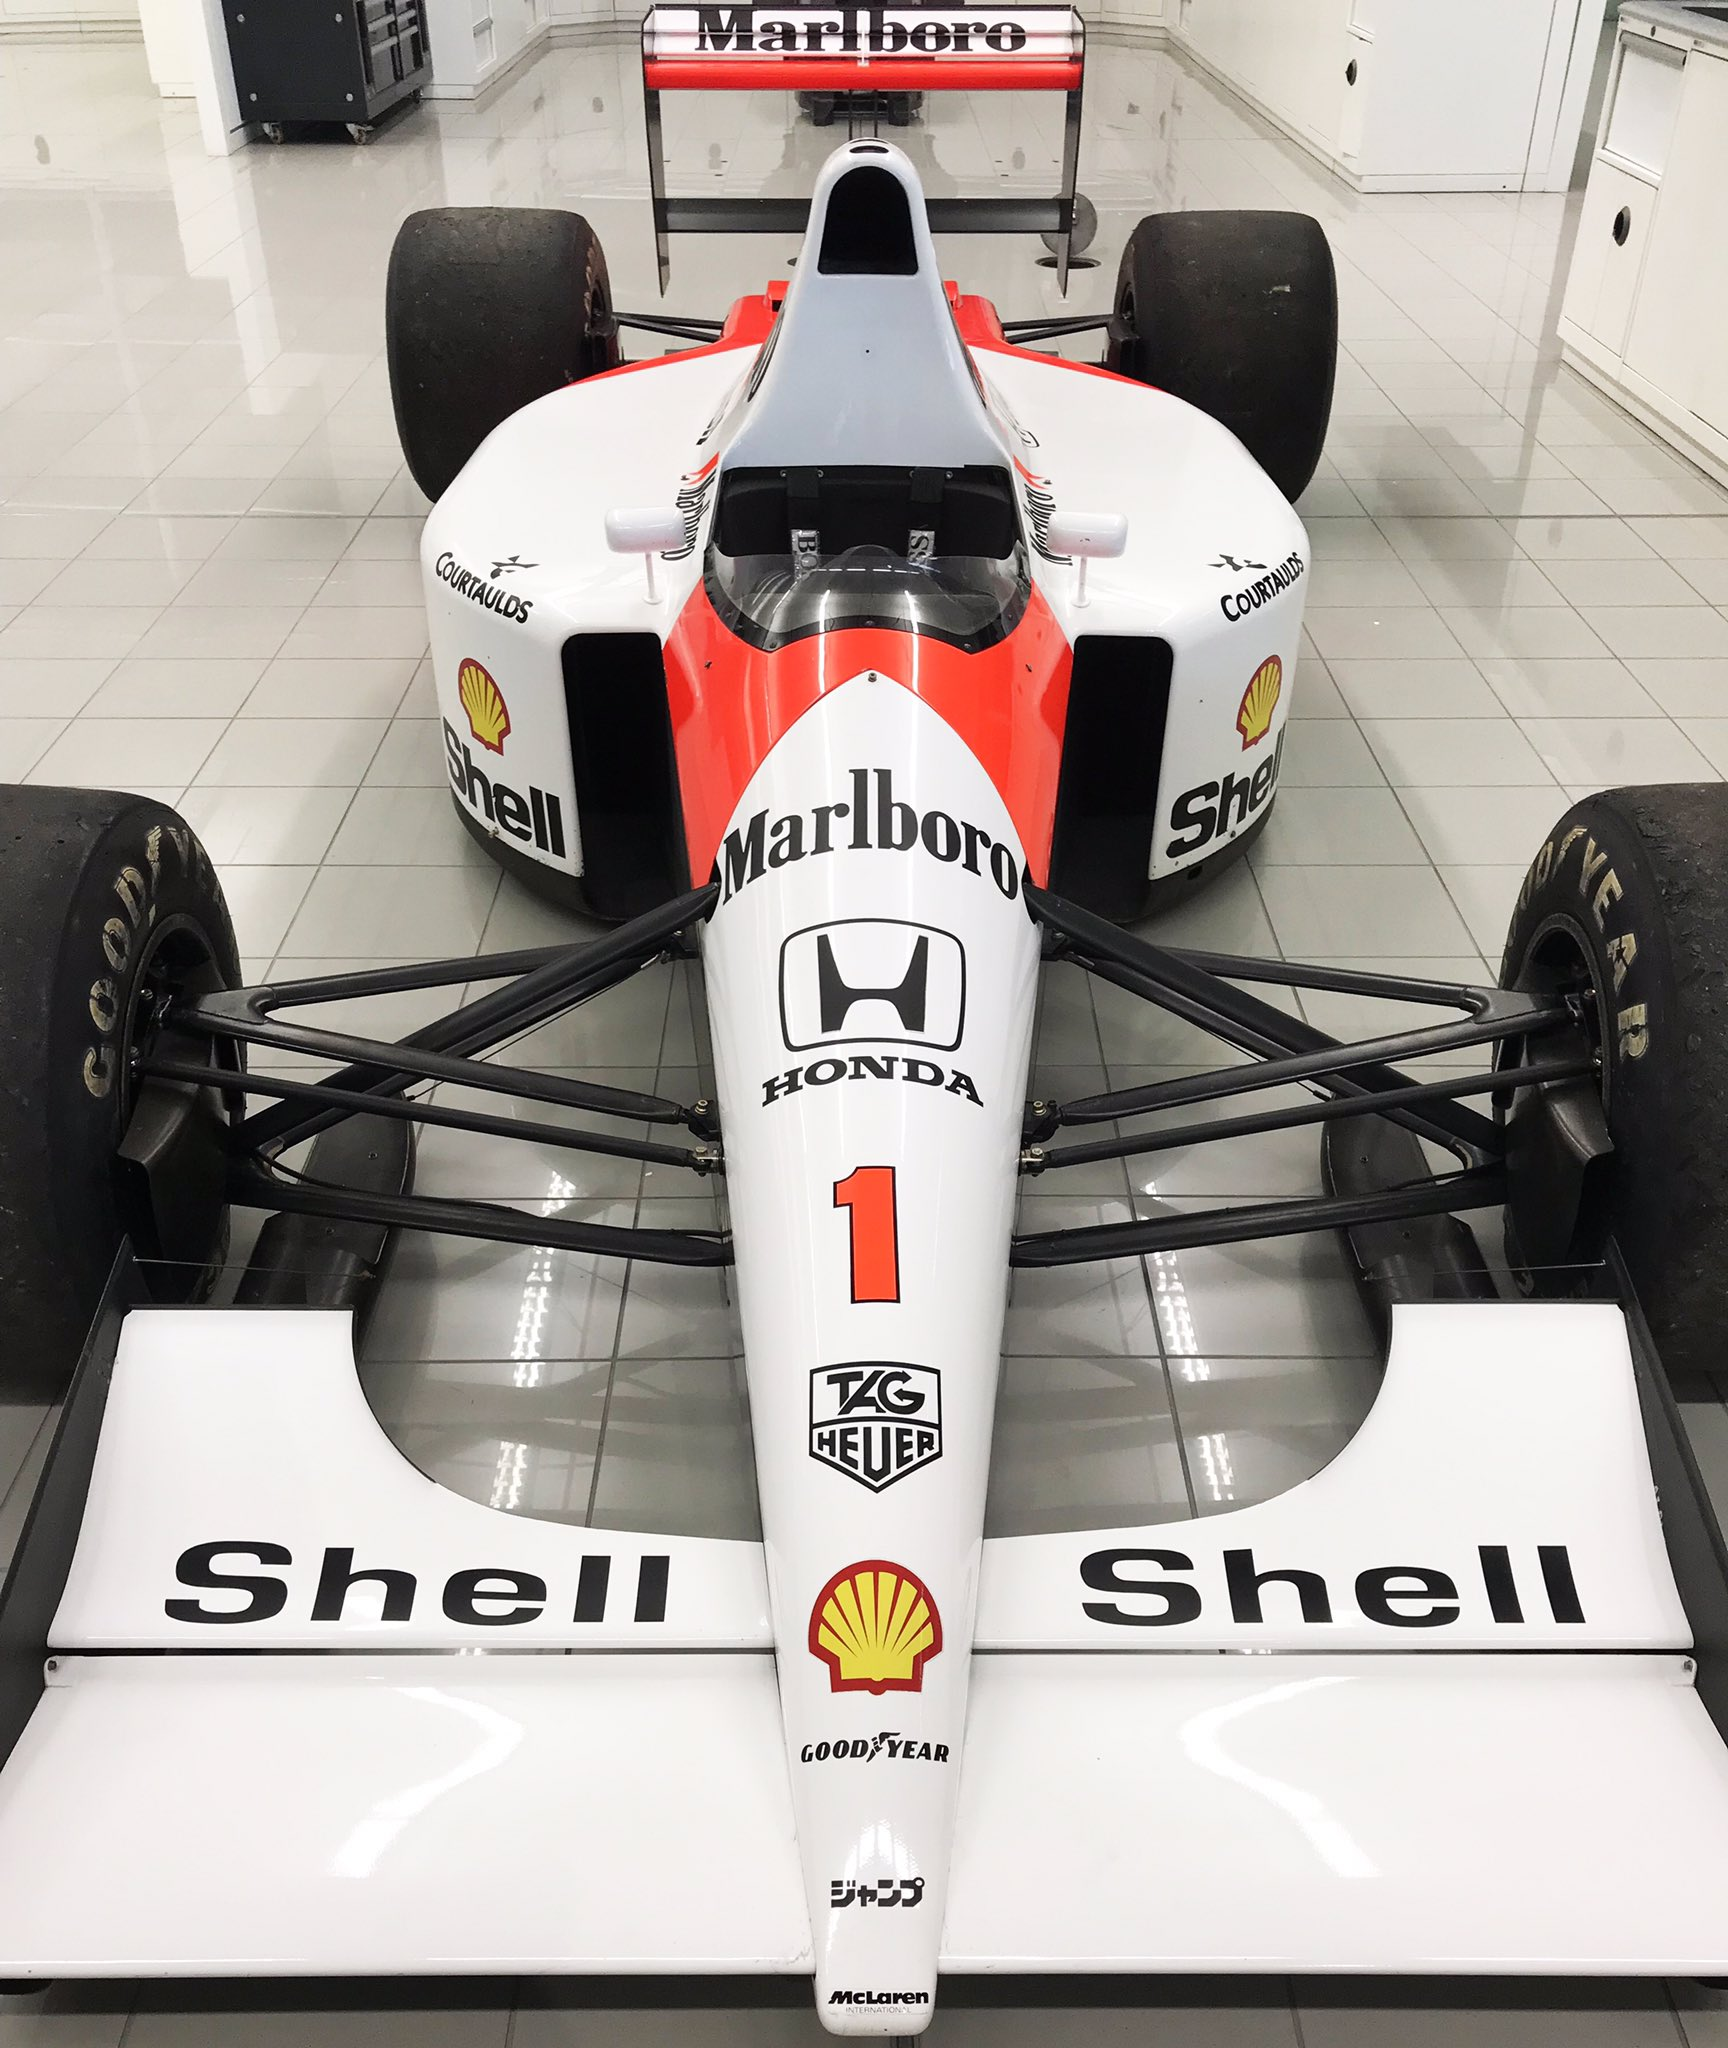 The MP4/6 looks stunning under the bright lights of the MTC race bays. #MTCSnaps �� https://t.co/rV6Bx8BvWd